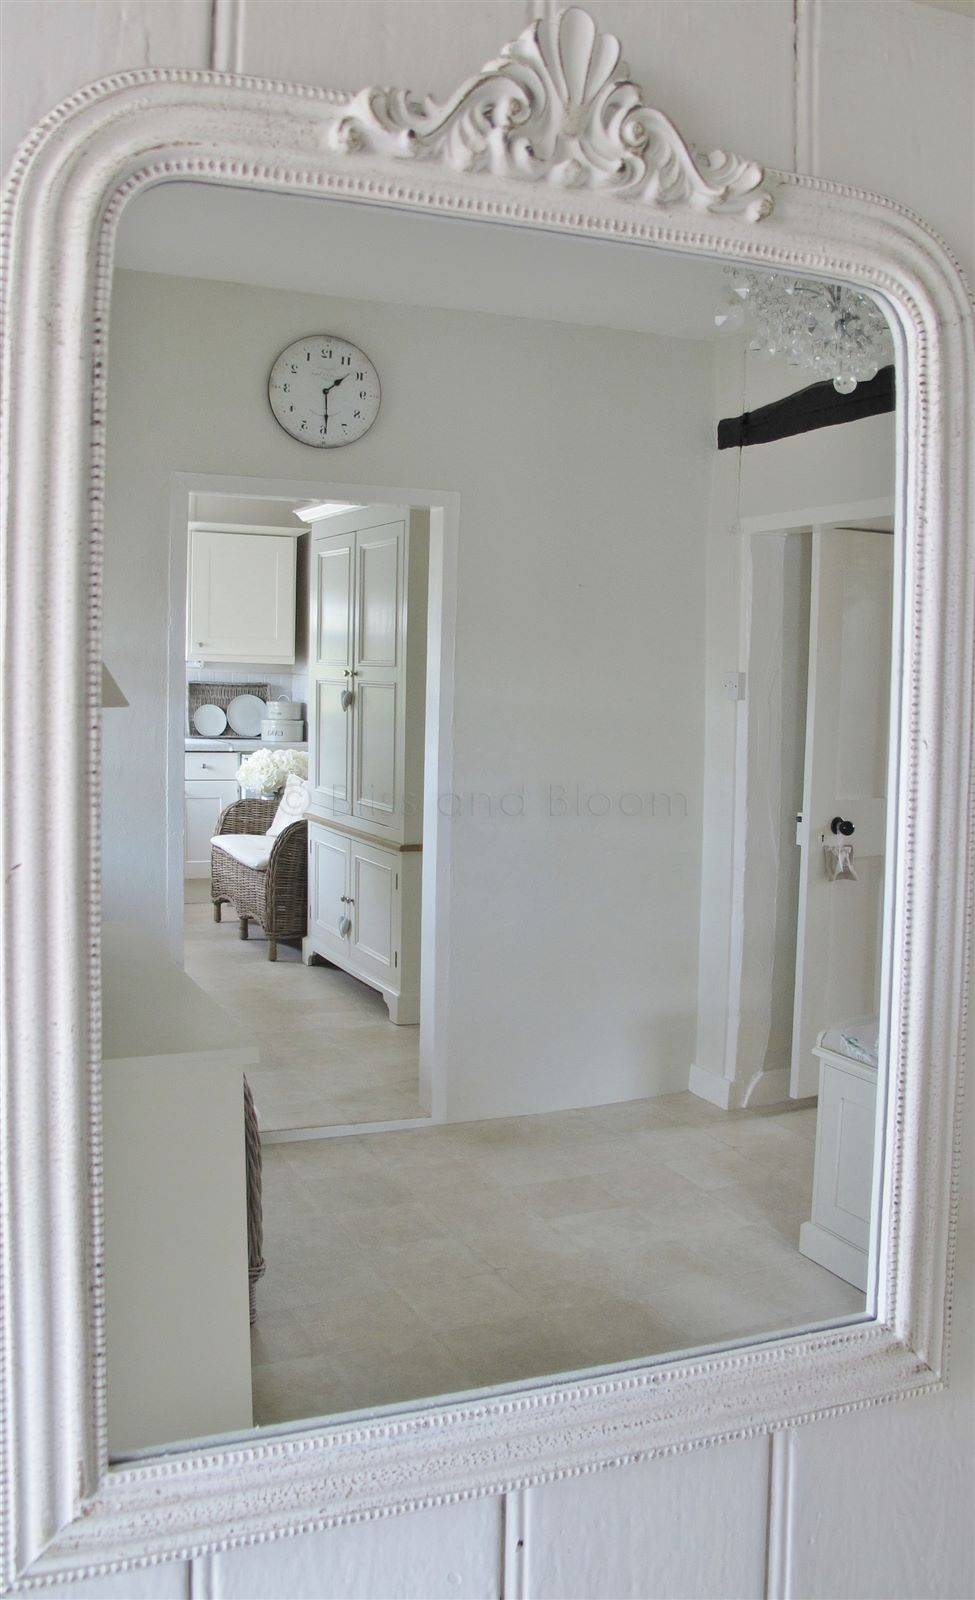 French Style White Wall Mirror | Bliss And Bloom Ltd With French Style Wall Mirrors (View 9 of 15)